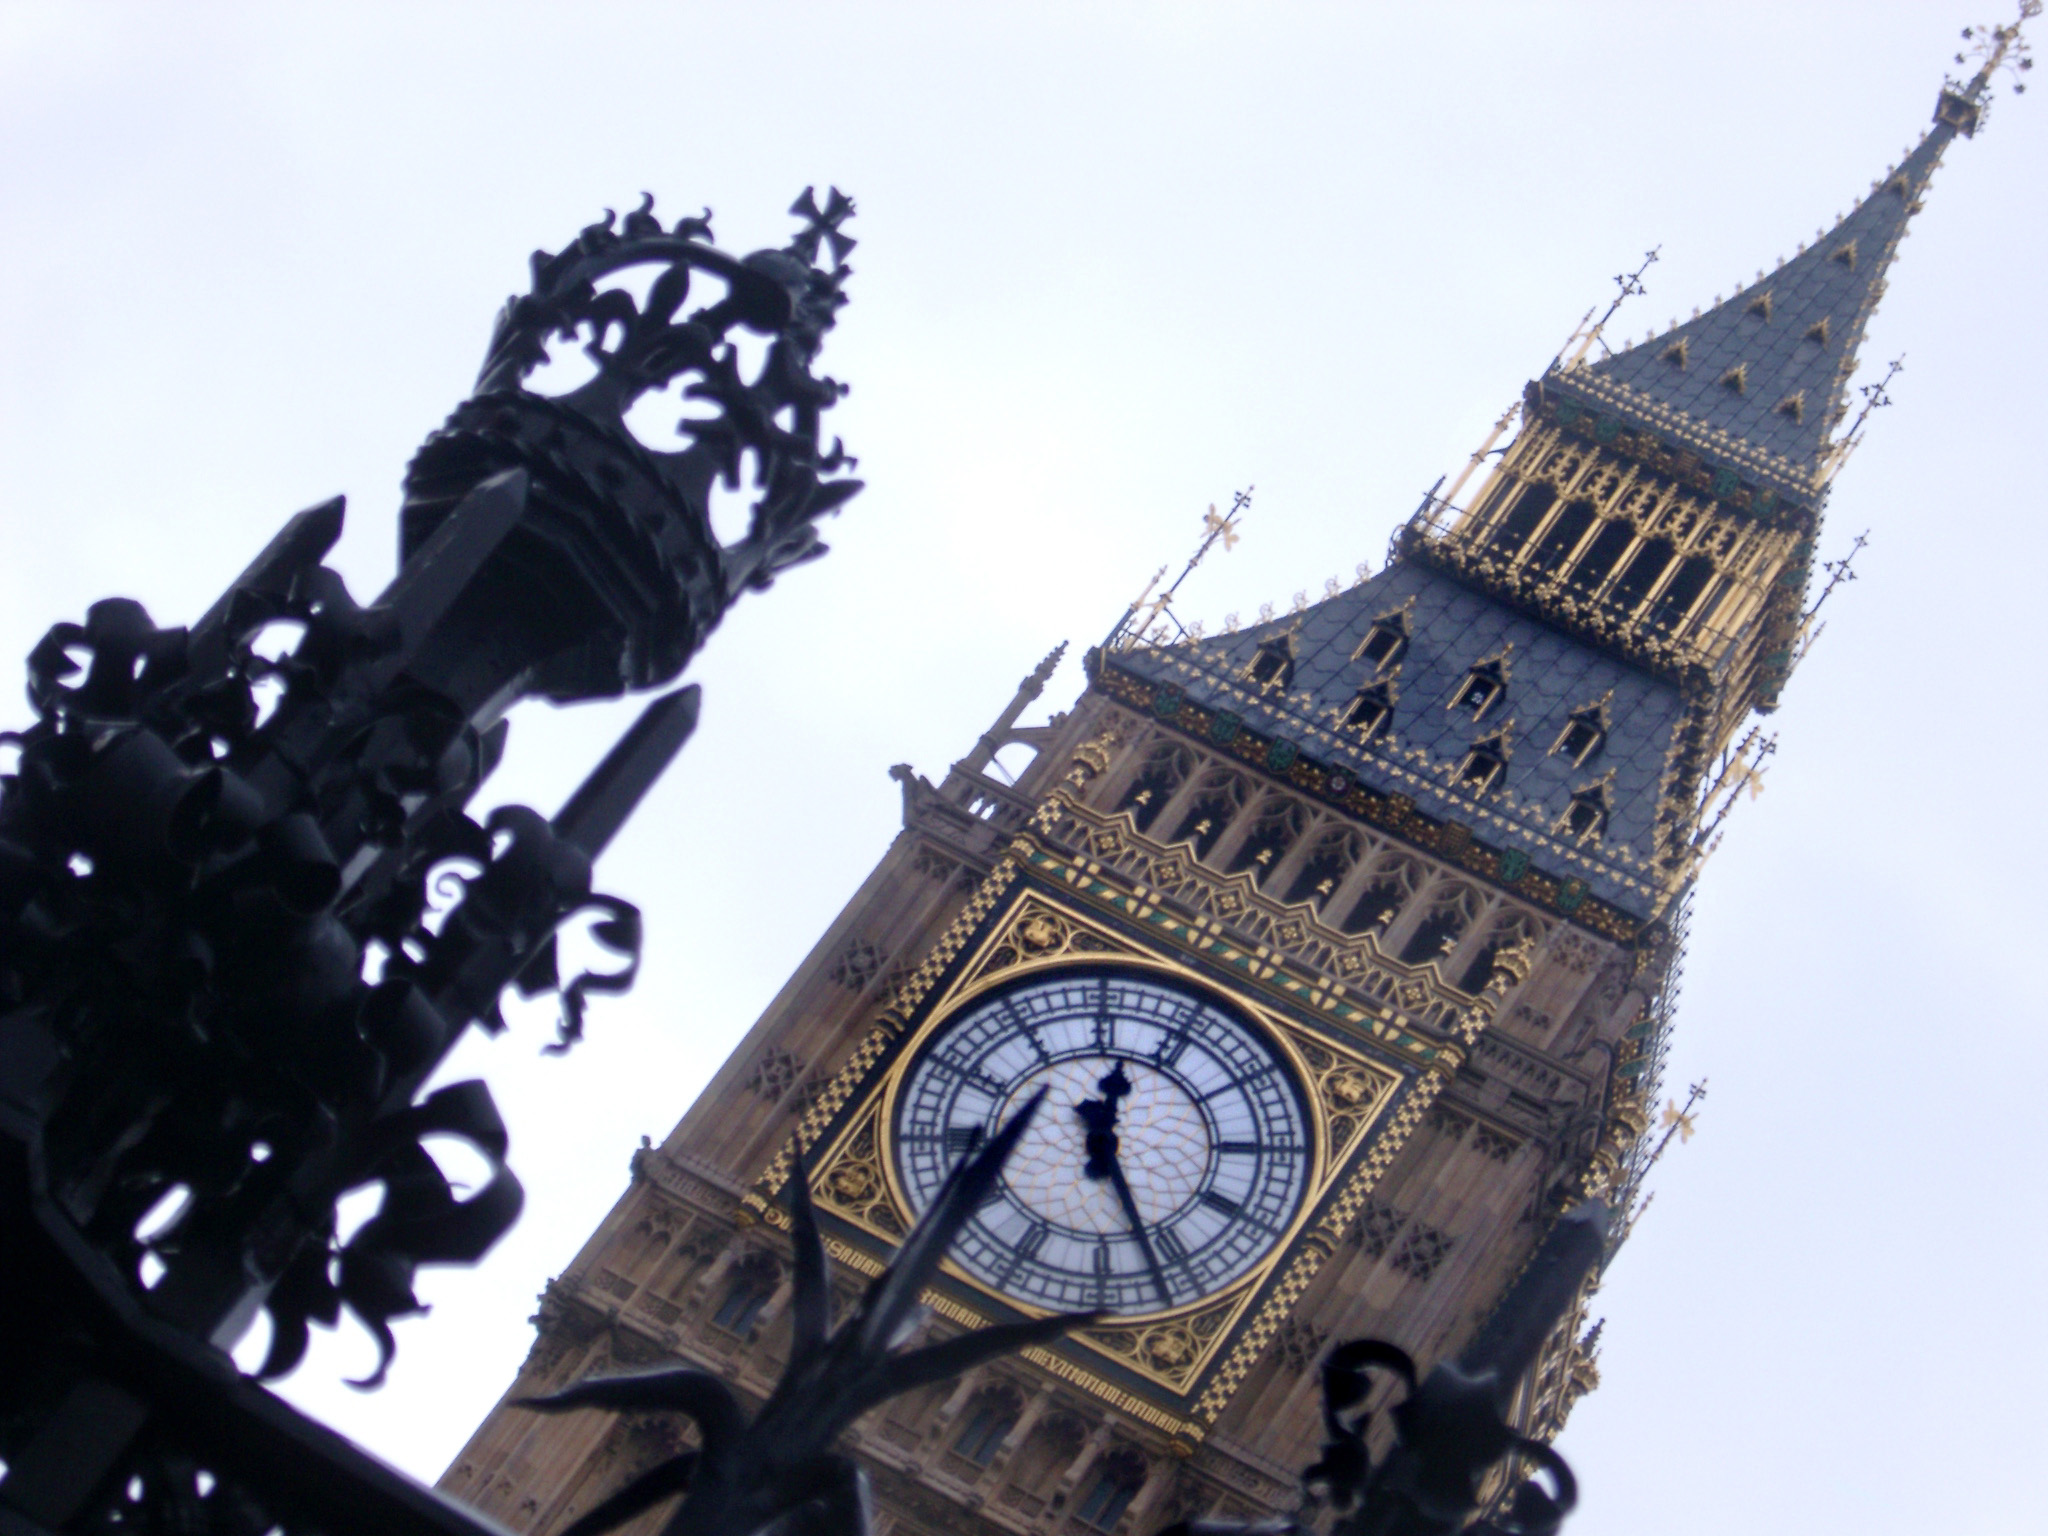 View of Big Ben or the Westminster Tower, the original clock tower of the old Palace of Westminster and now an iconic tourist attraction